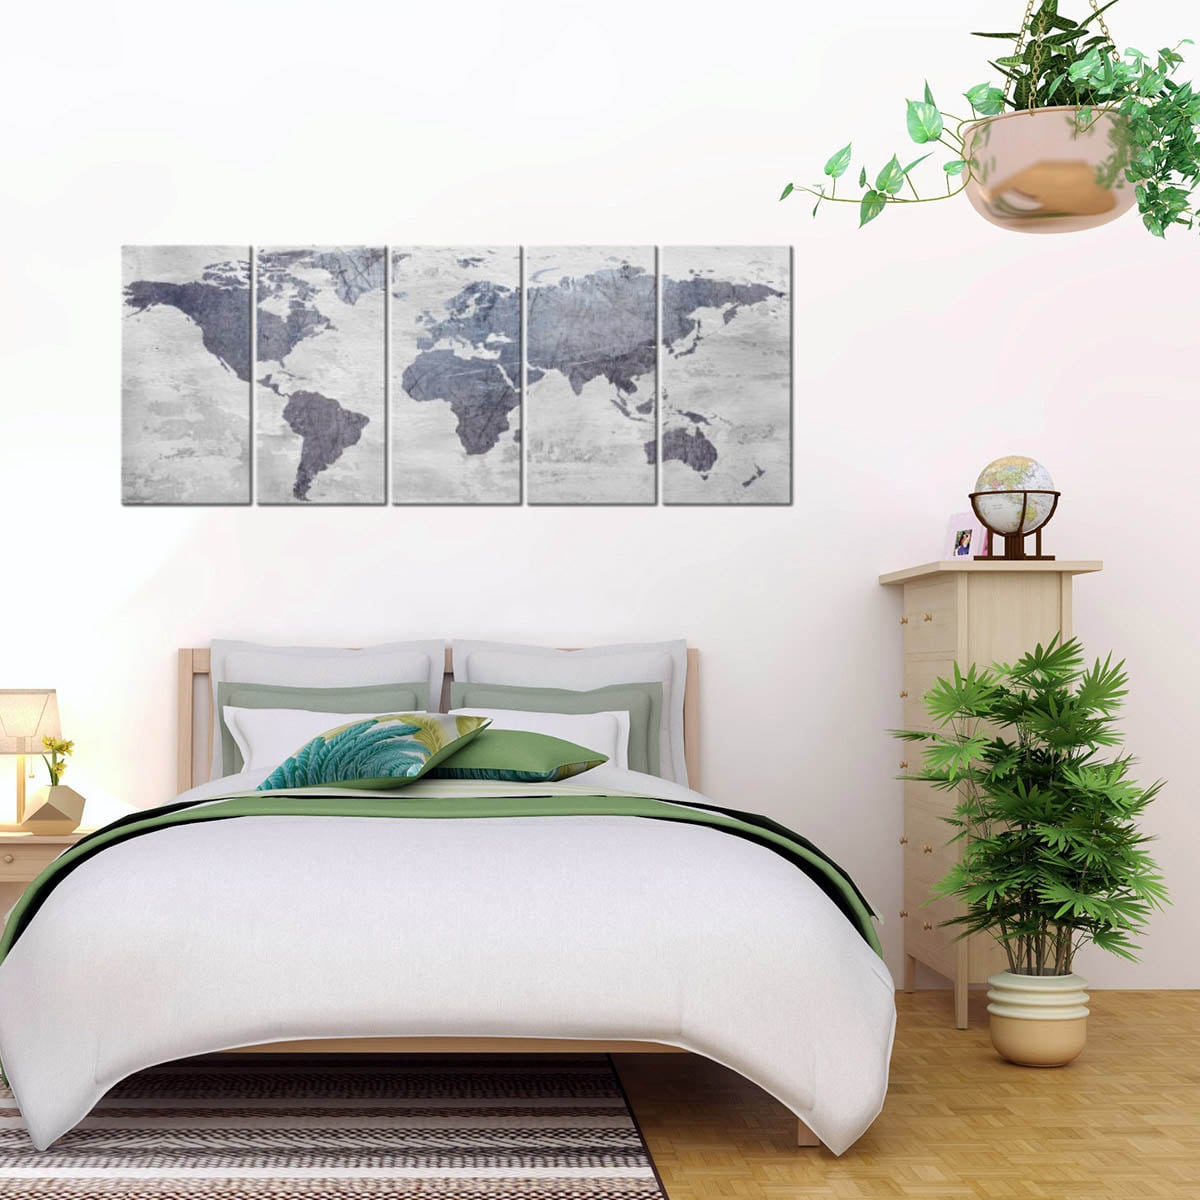 Modern world map canvas print with a concrete effect for a design wall decoration